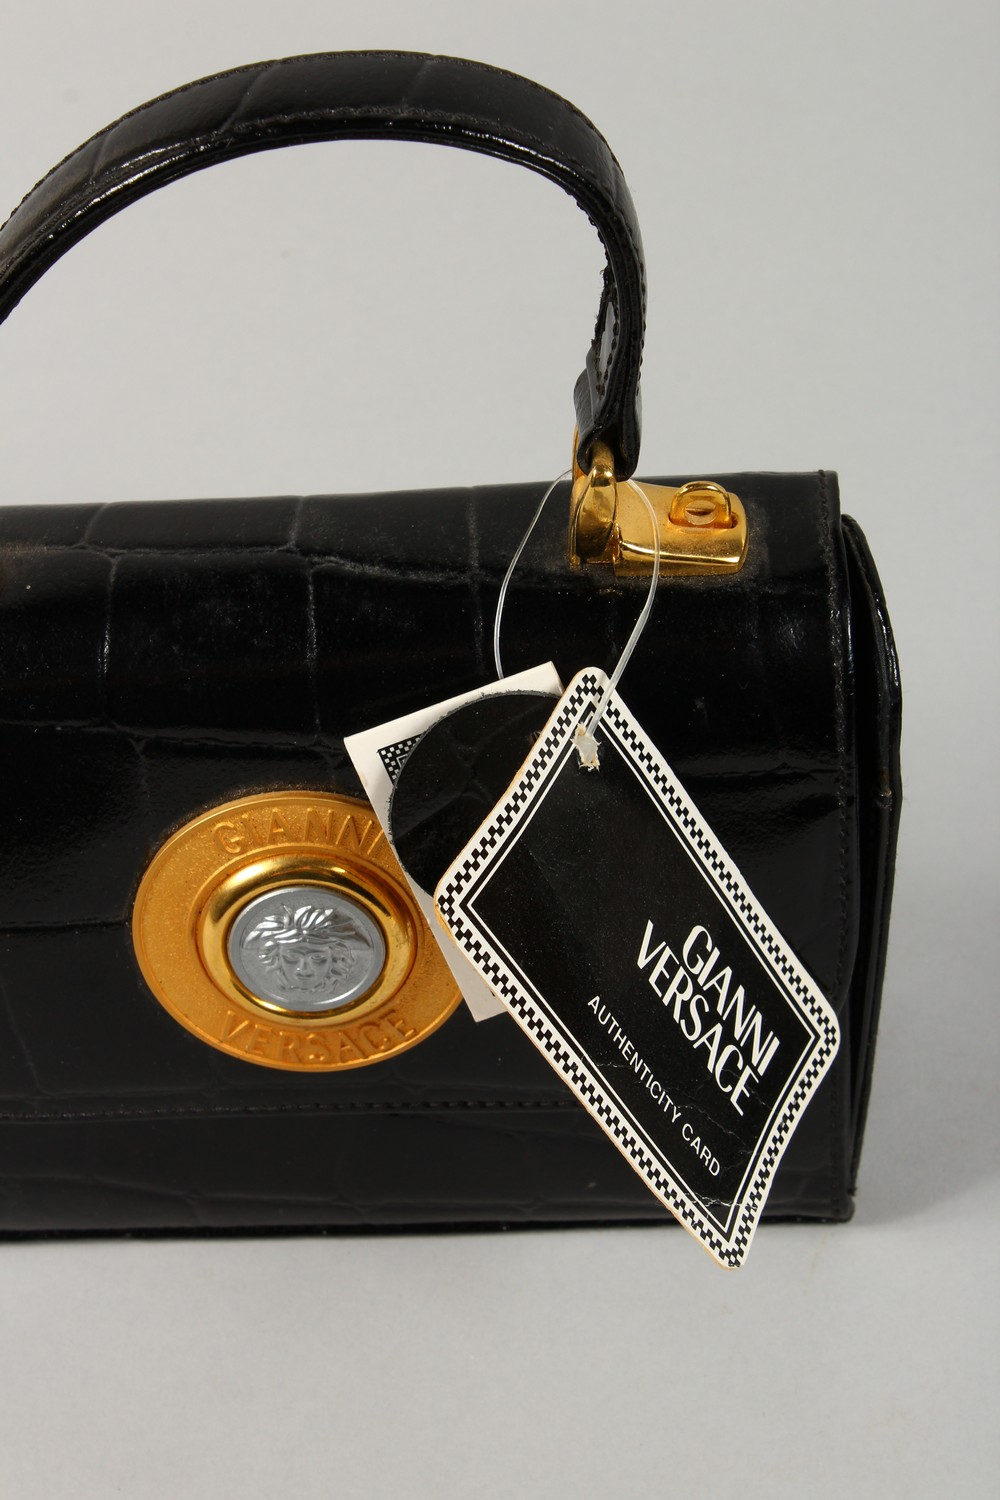 ALGERNON ASPREY, a ladies black leather handbag, and two other bags. - Image 9 of 16